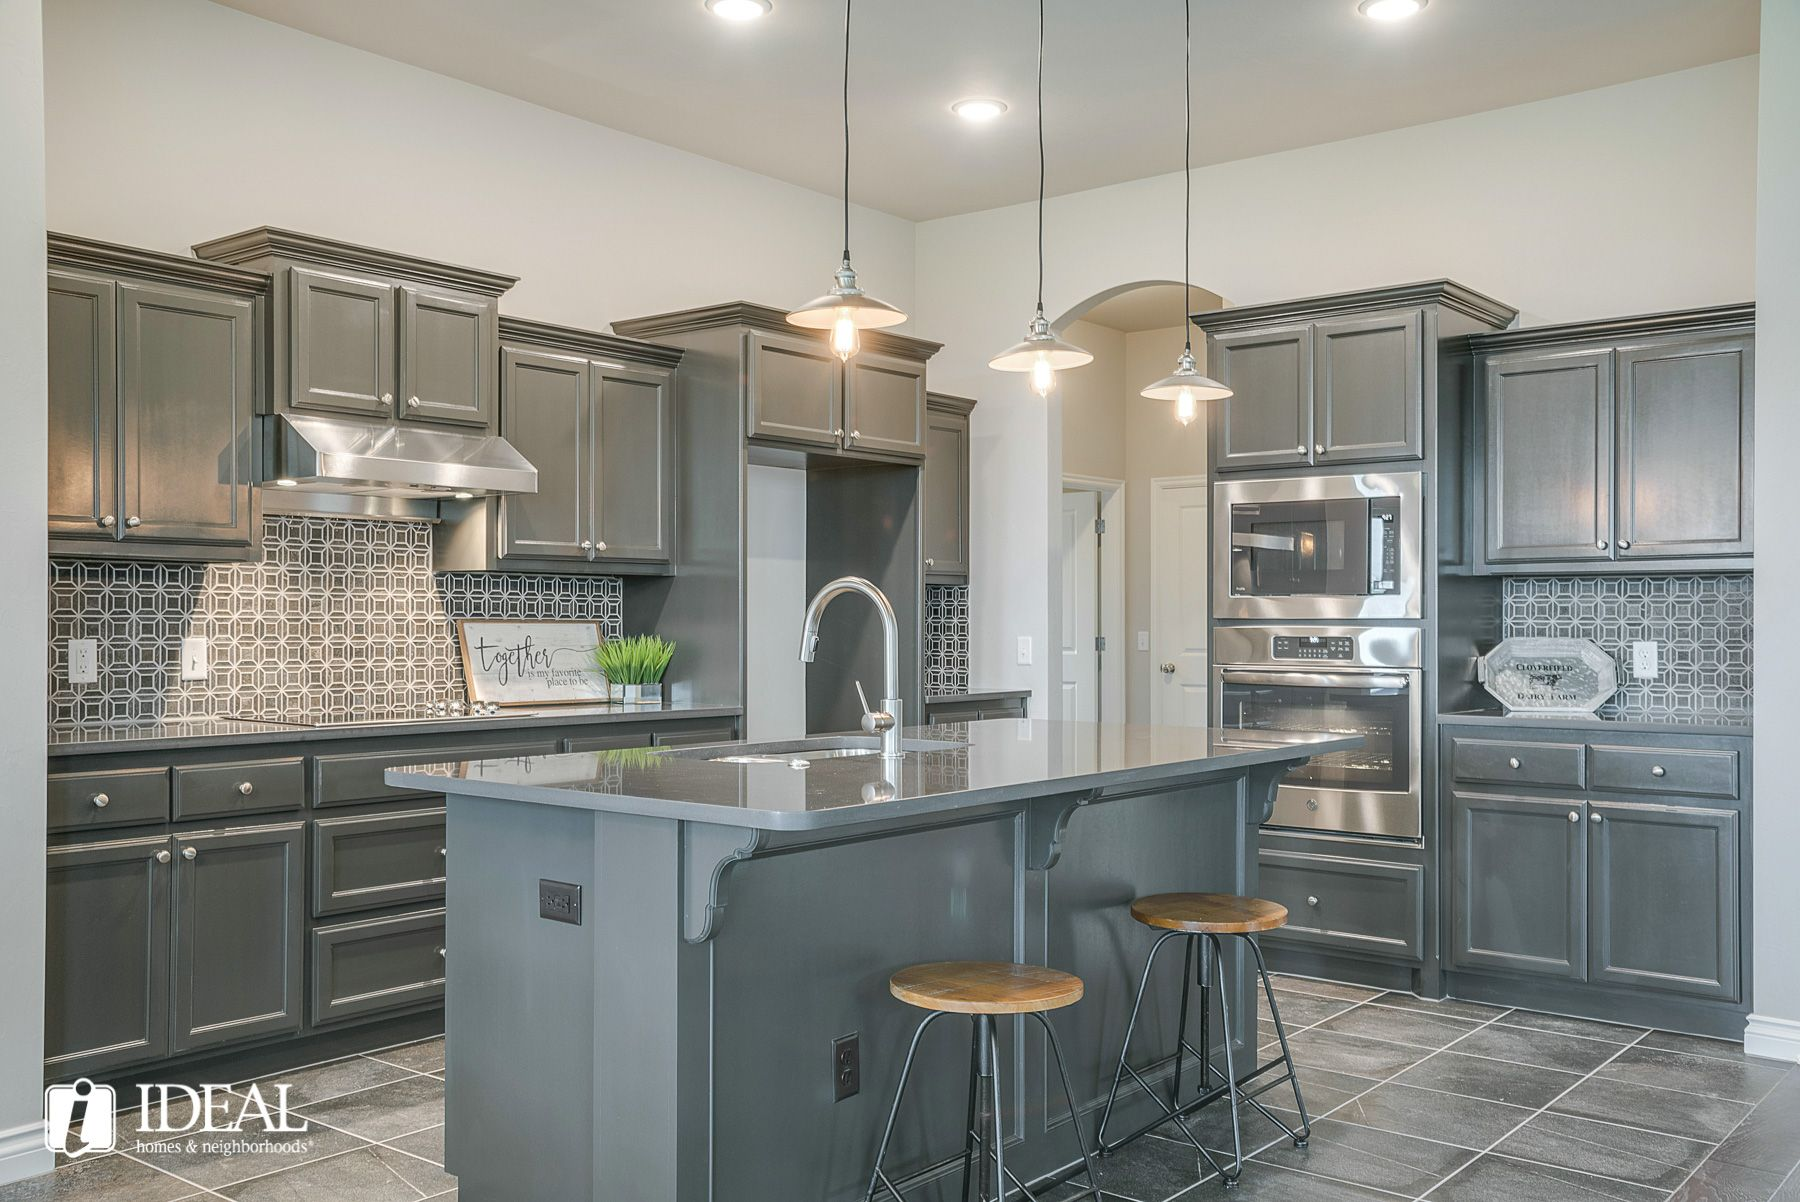 Kitchen featured in the Marietta By Ideal Homes in Oklahoma City, OK